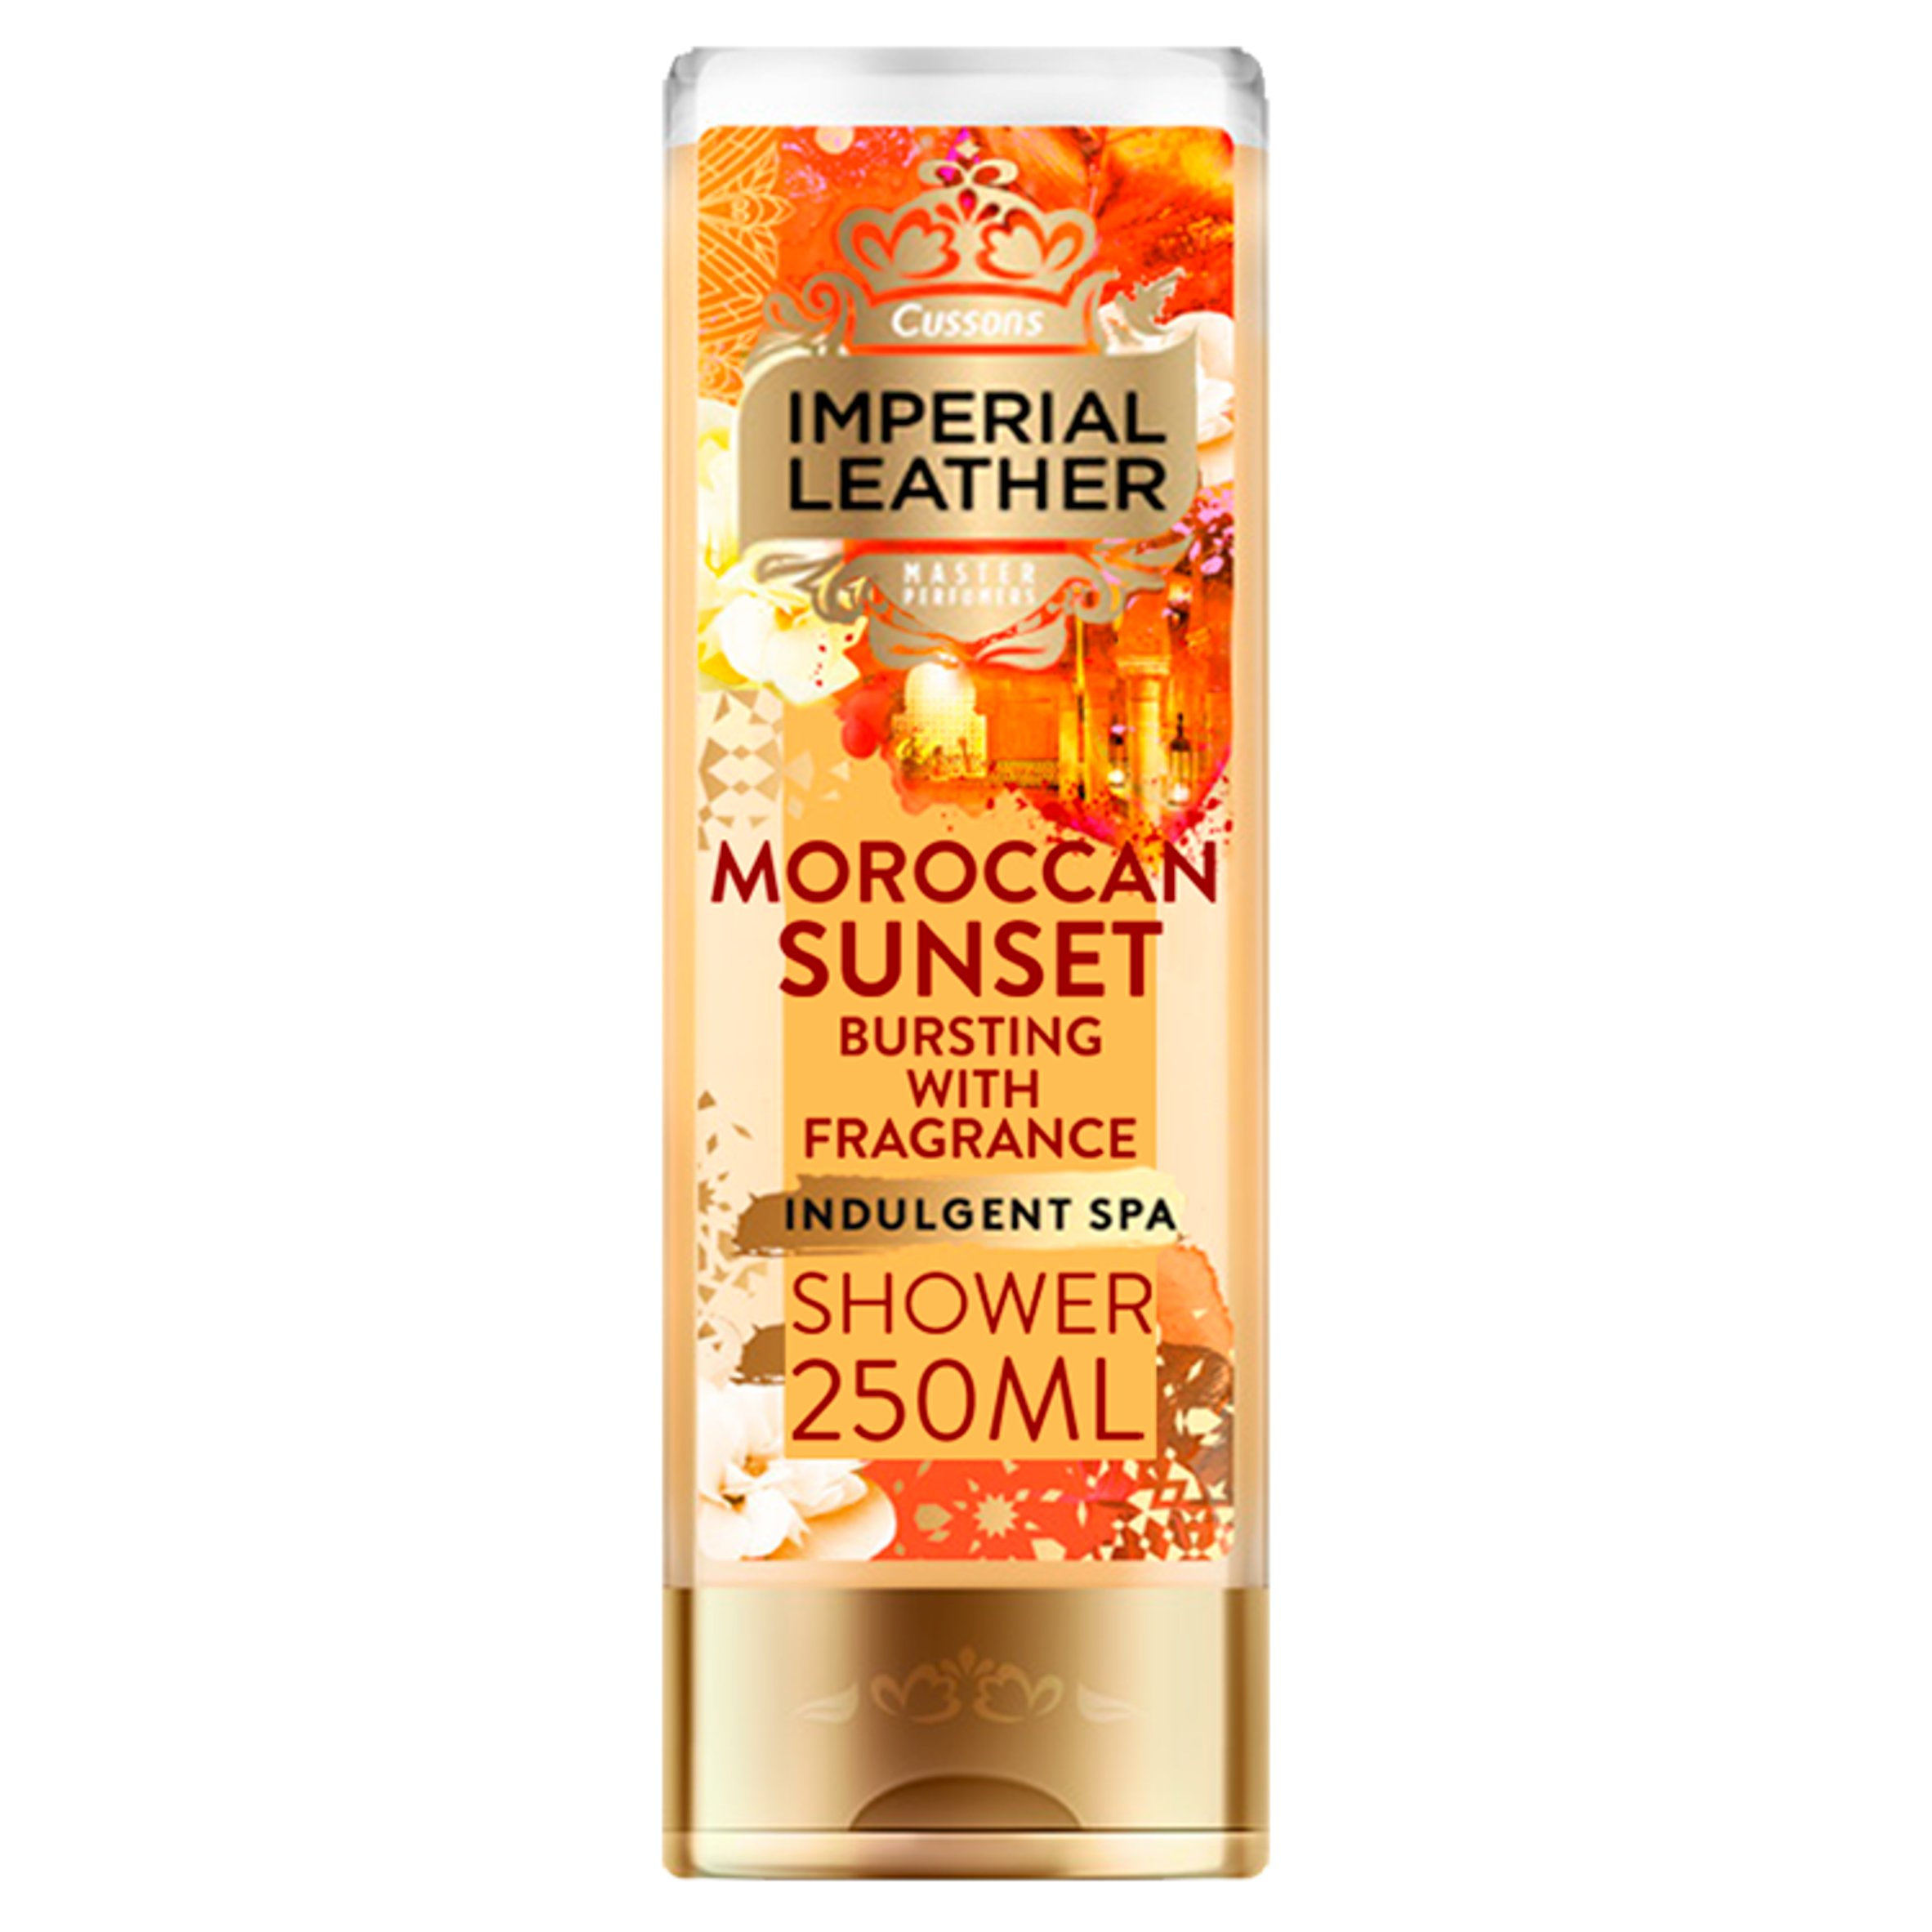 Imperial Leather Moroccan Sunset Shower Cream 250Ml